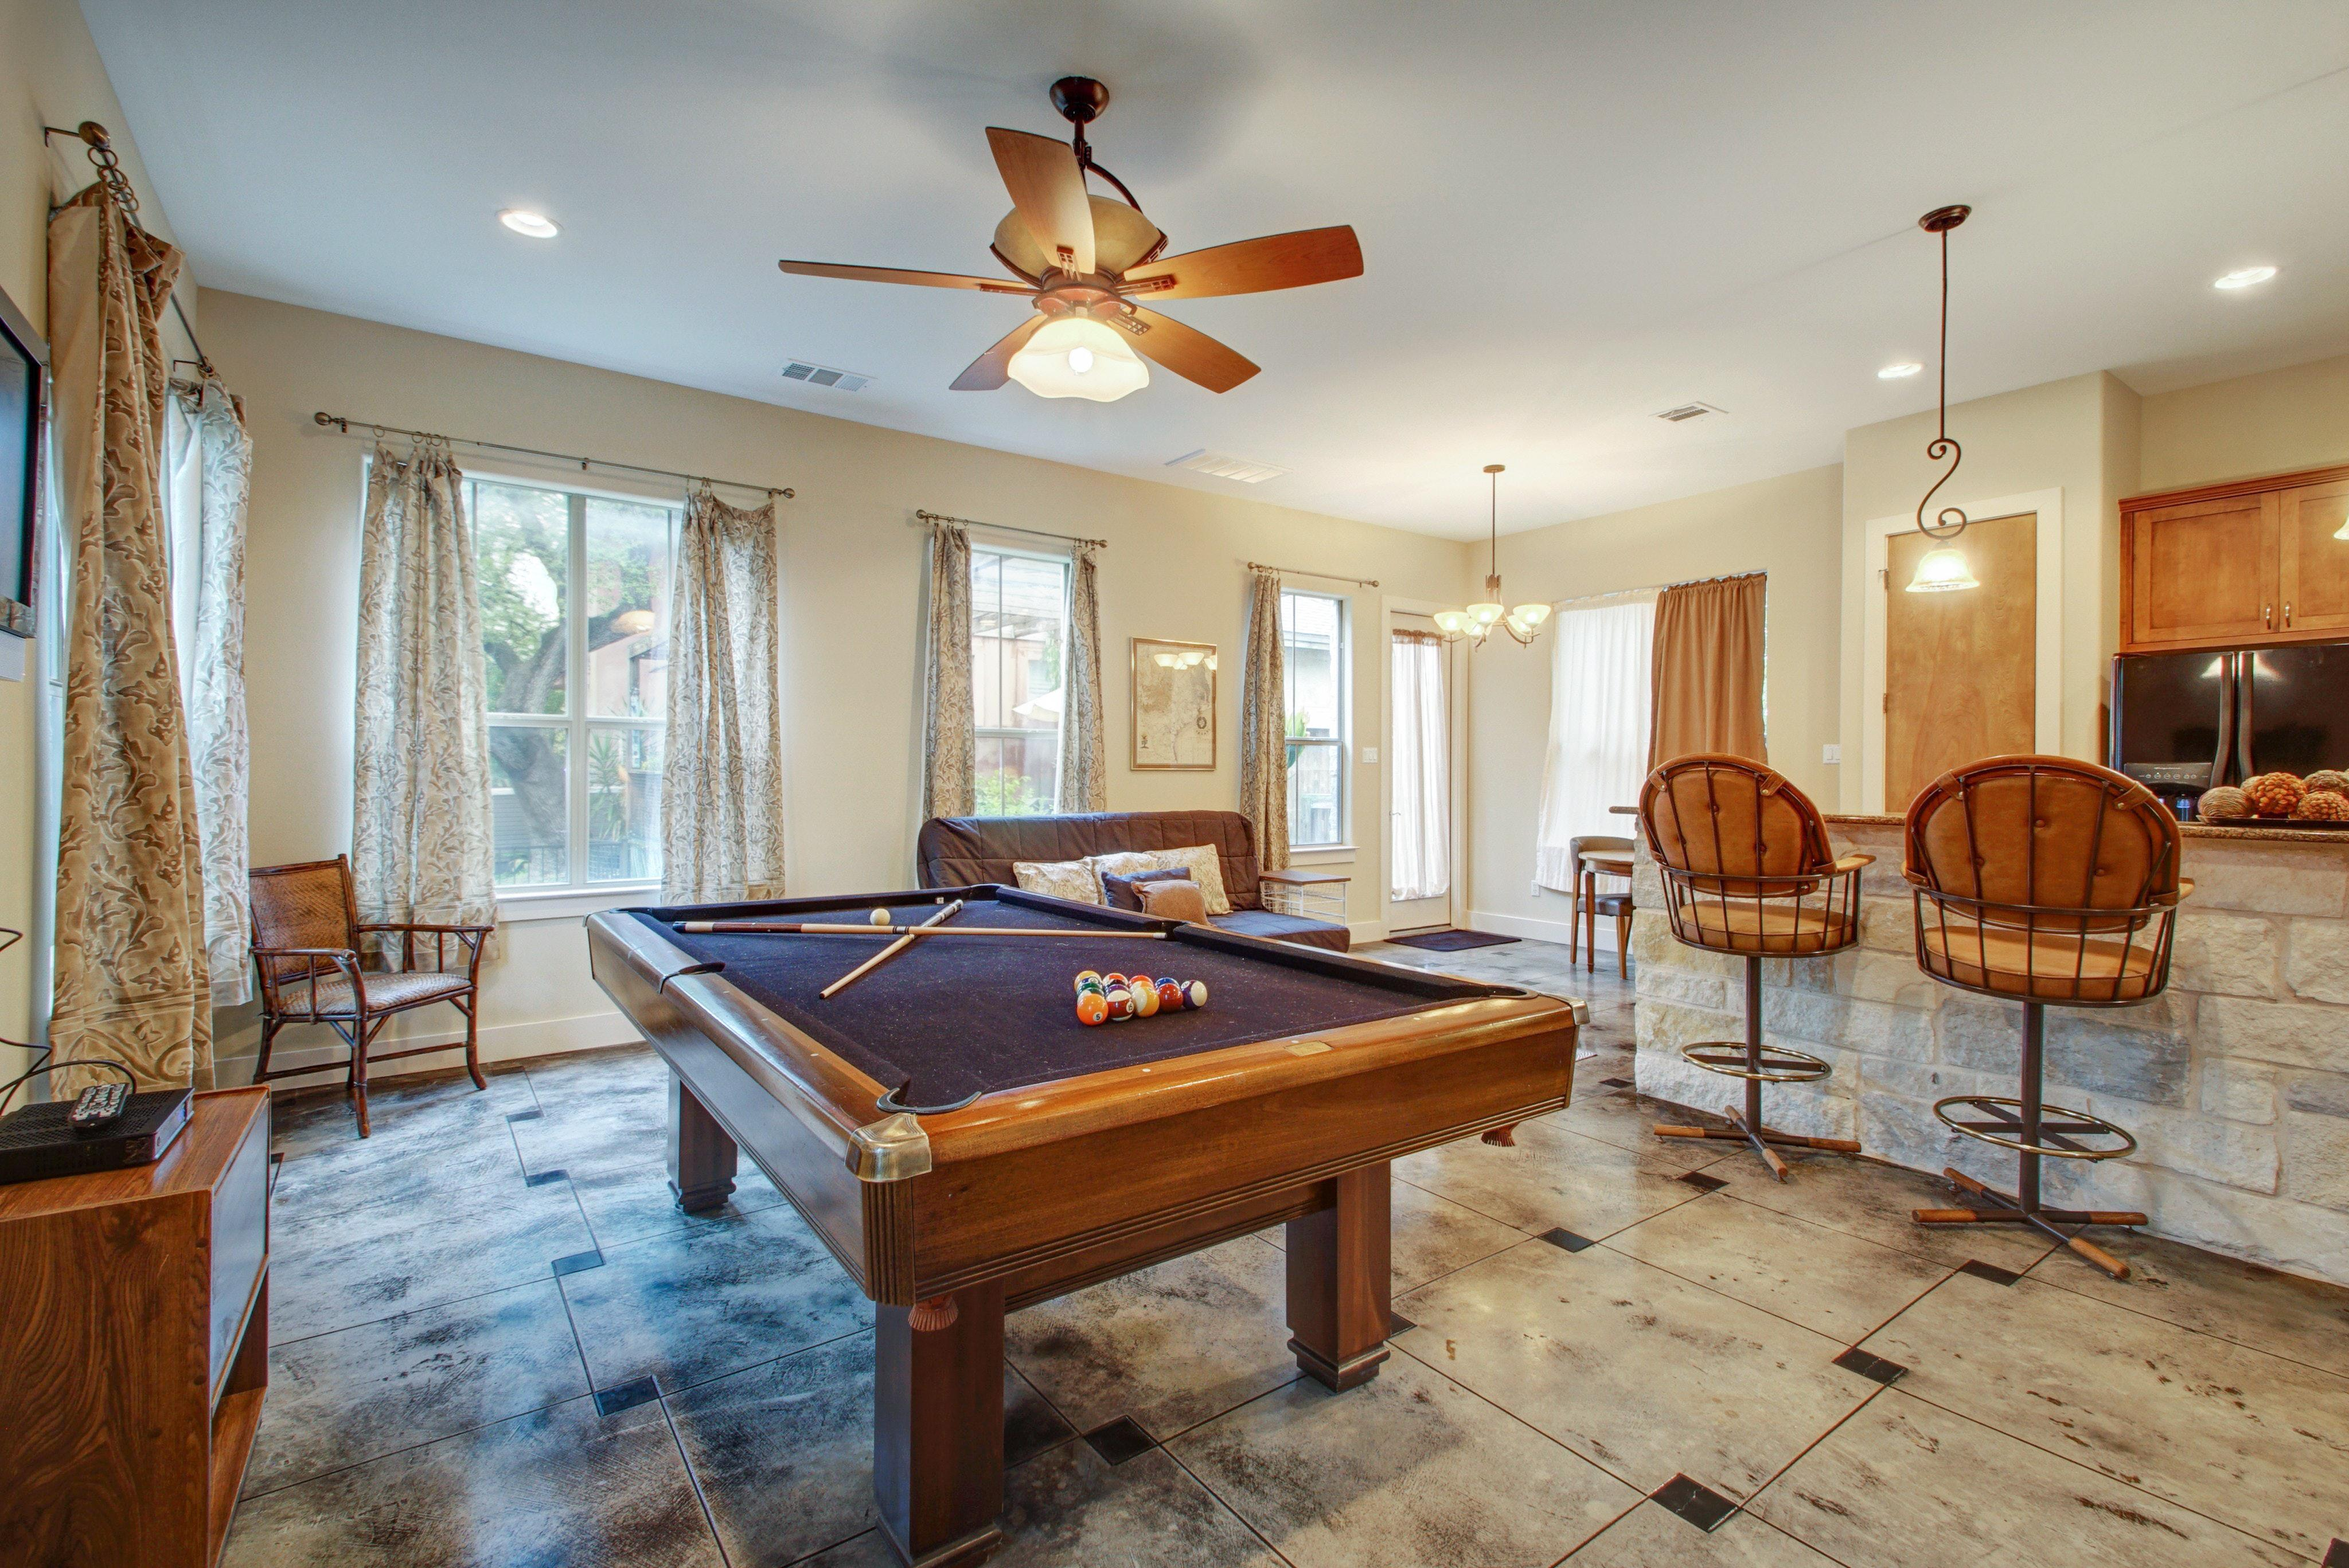 Welcome to Austin! This property is professionally managed by TurnKey Vacation Rentals.